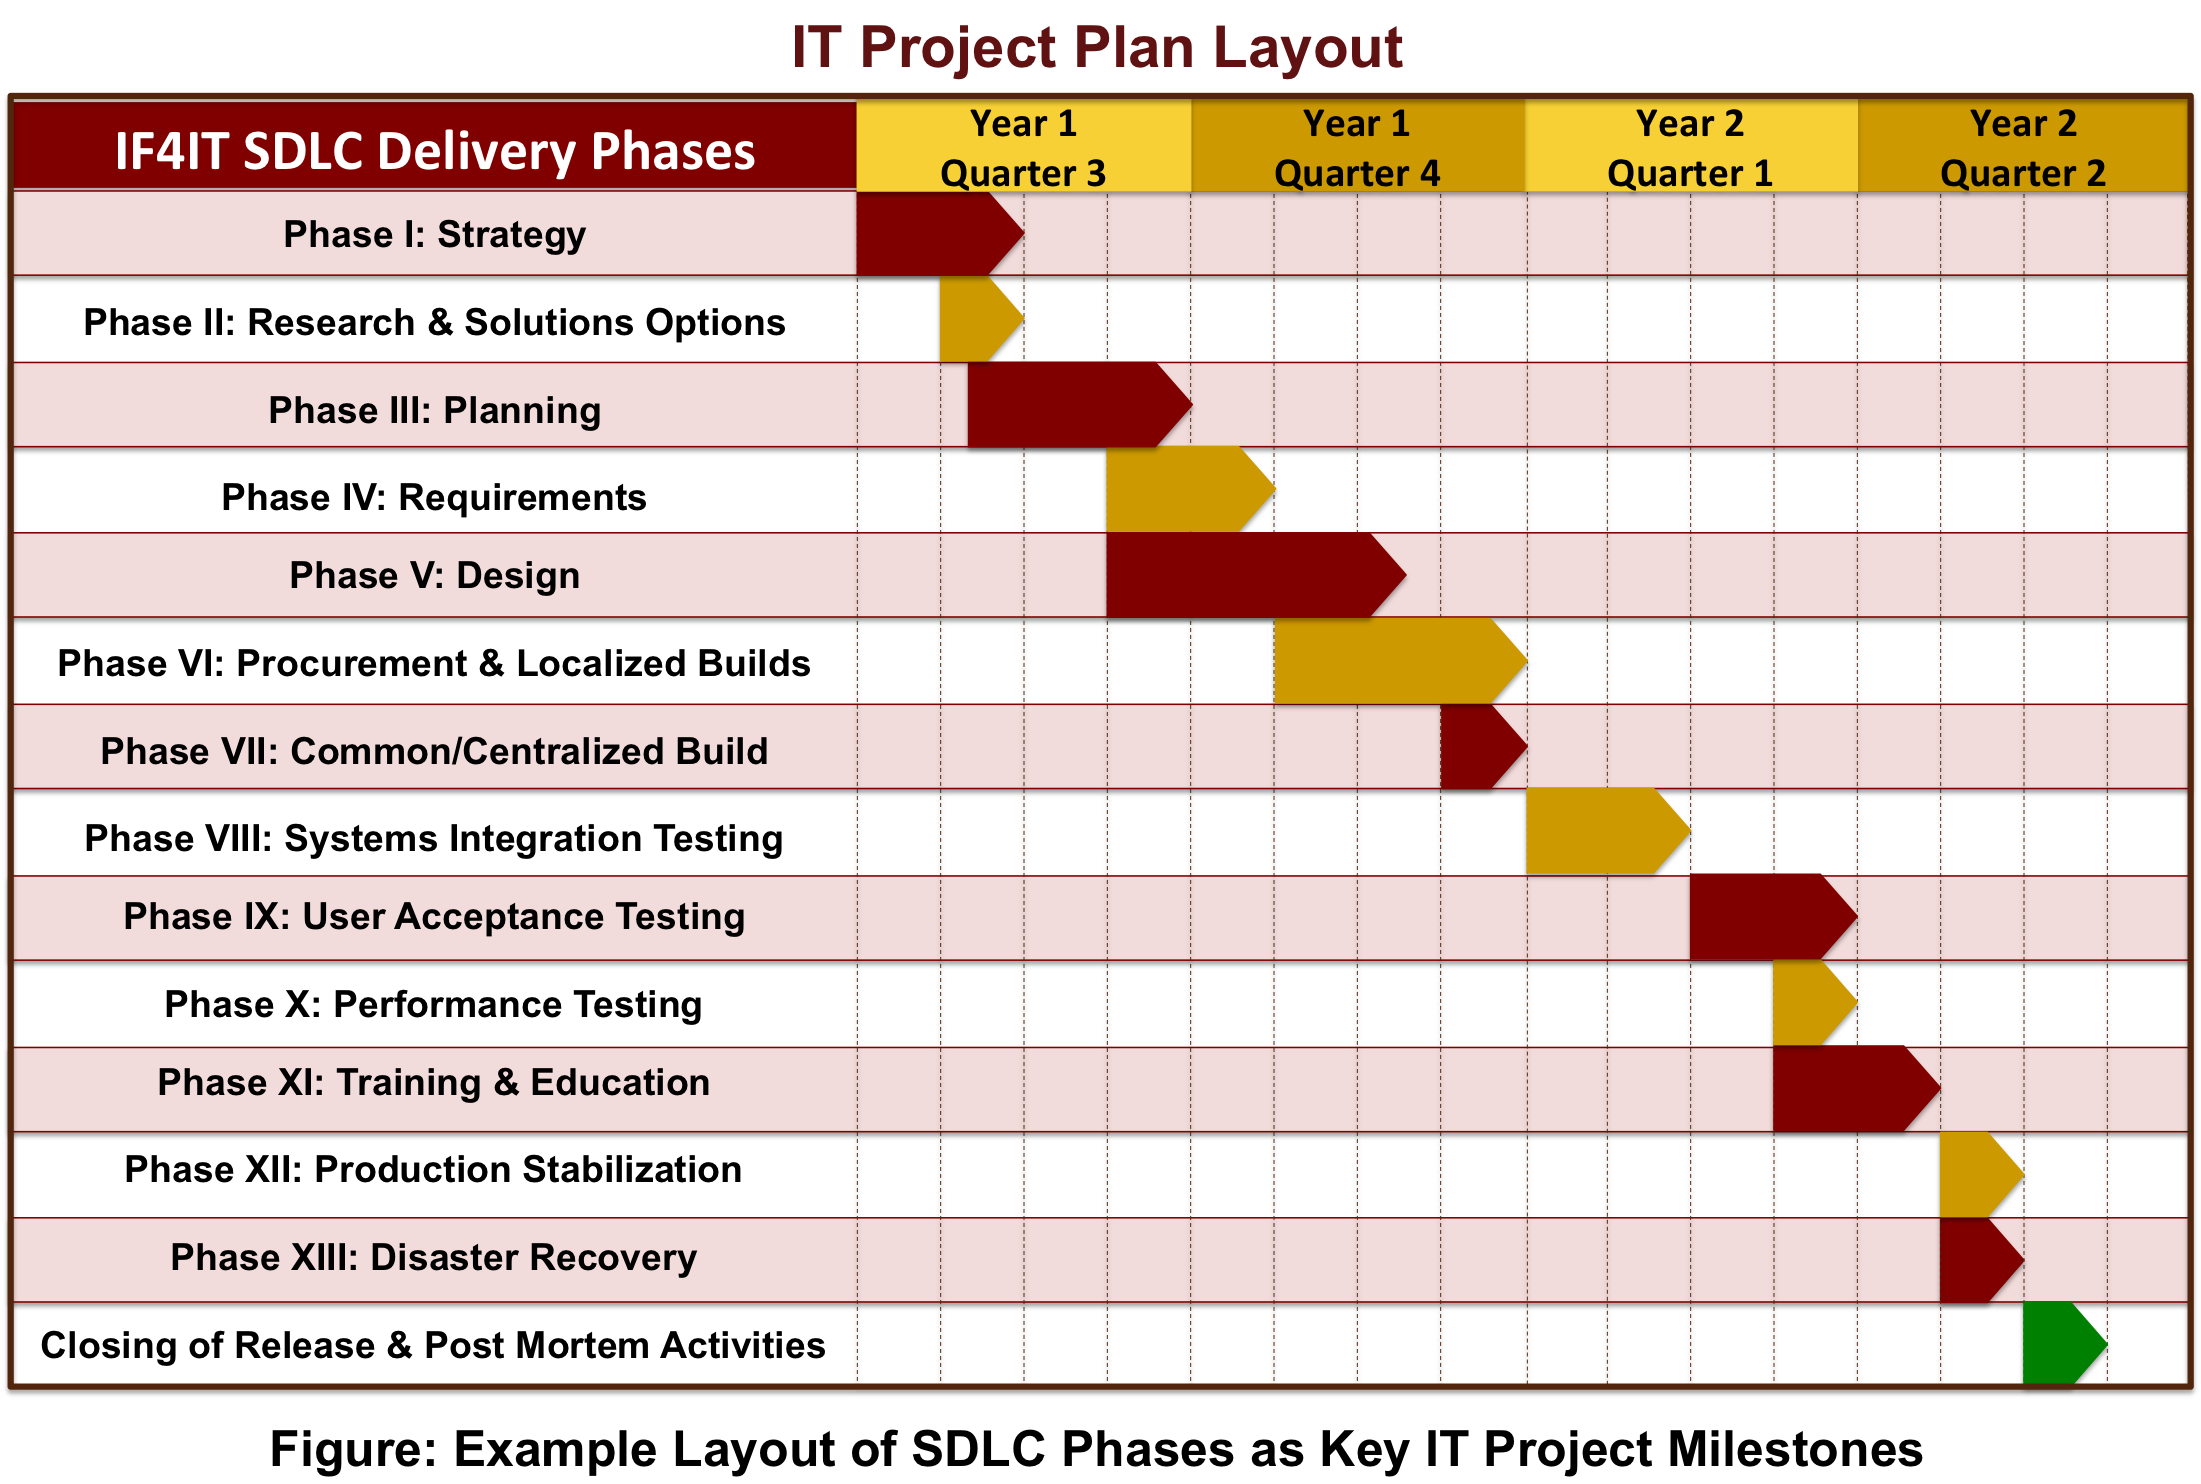 SDLC Based IT Project Plan Layout Project plan templates – Project Plan Example